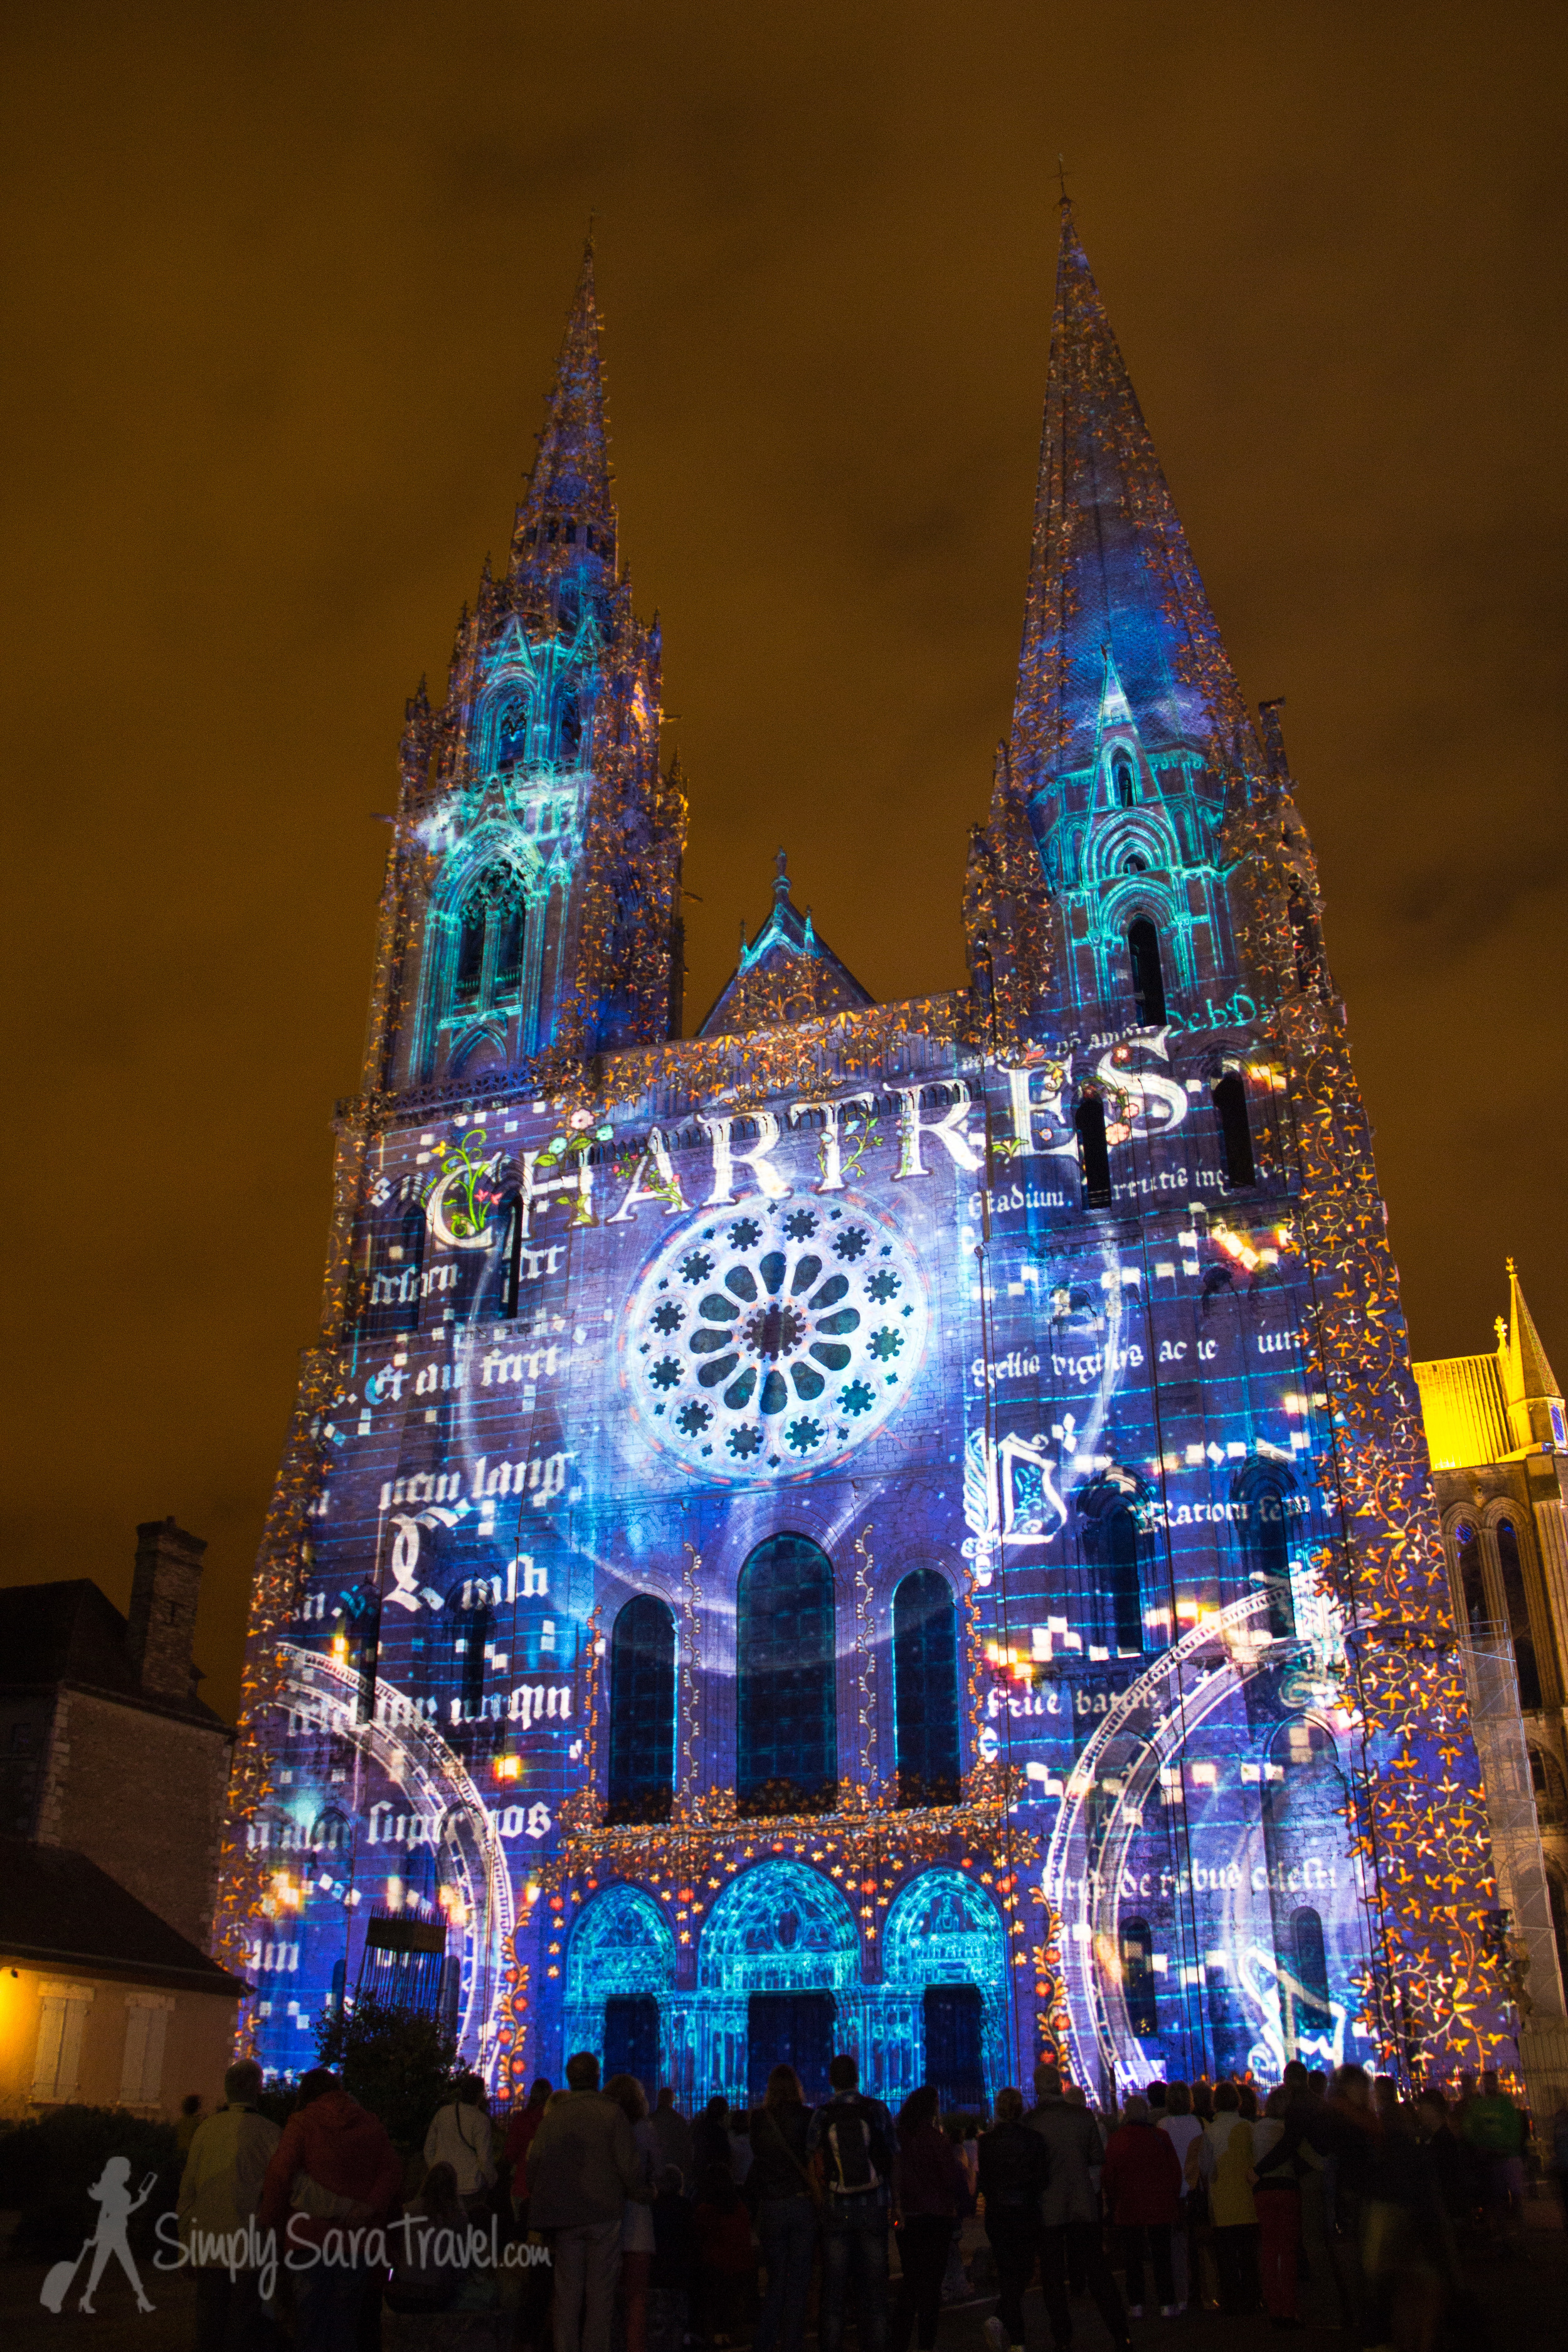 Chartres Cathedral at night,Chartres en lumières 2014